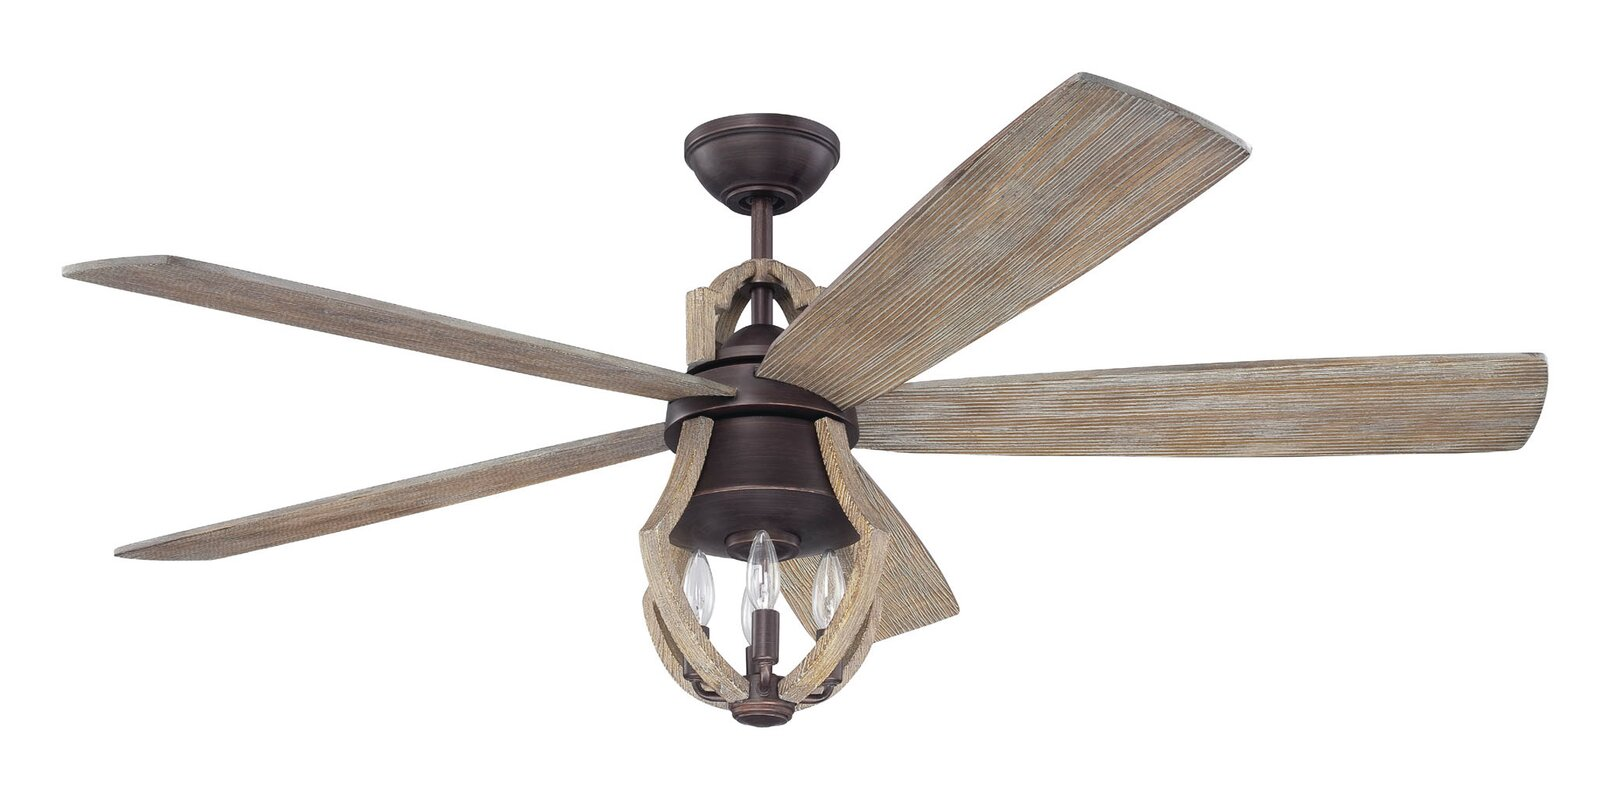 56 marcoux 5 blade led ceiling fan reviews birch lane 56 marcoux 5 blade led ceiling fan aloadofball Image collections